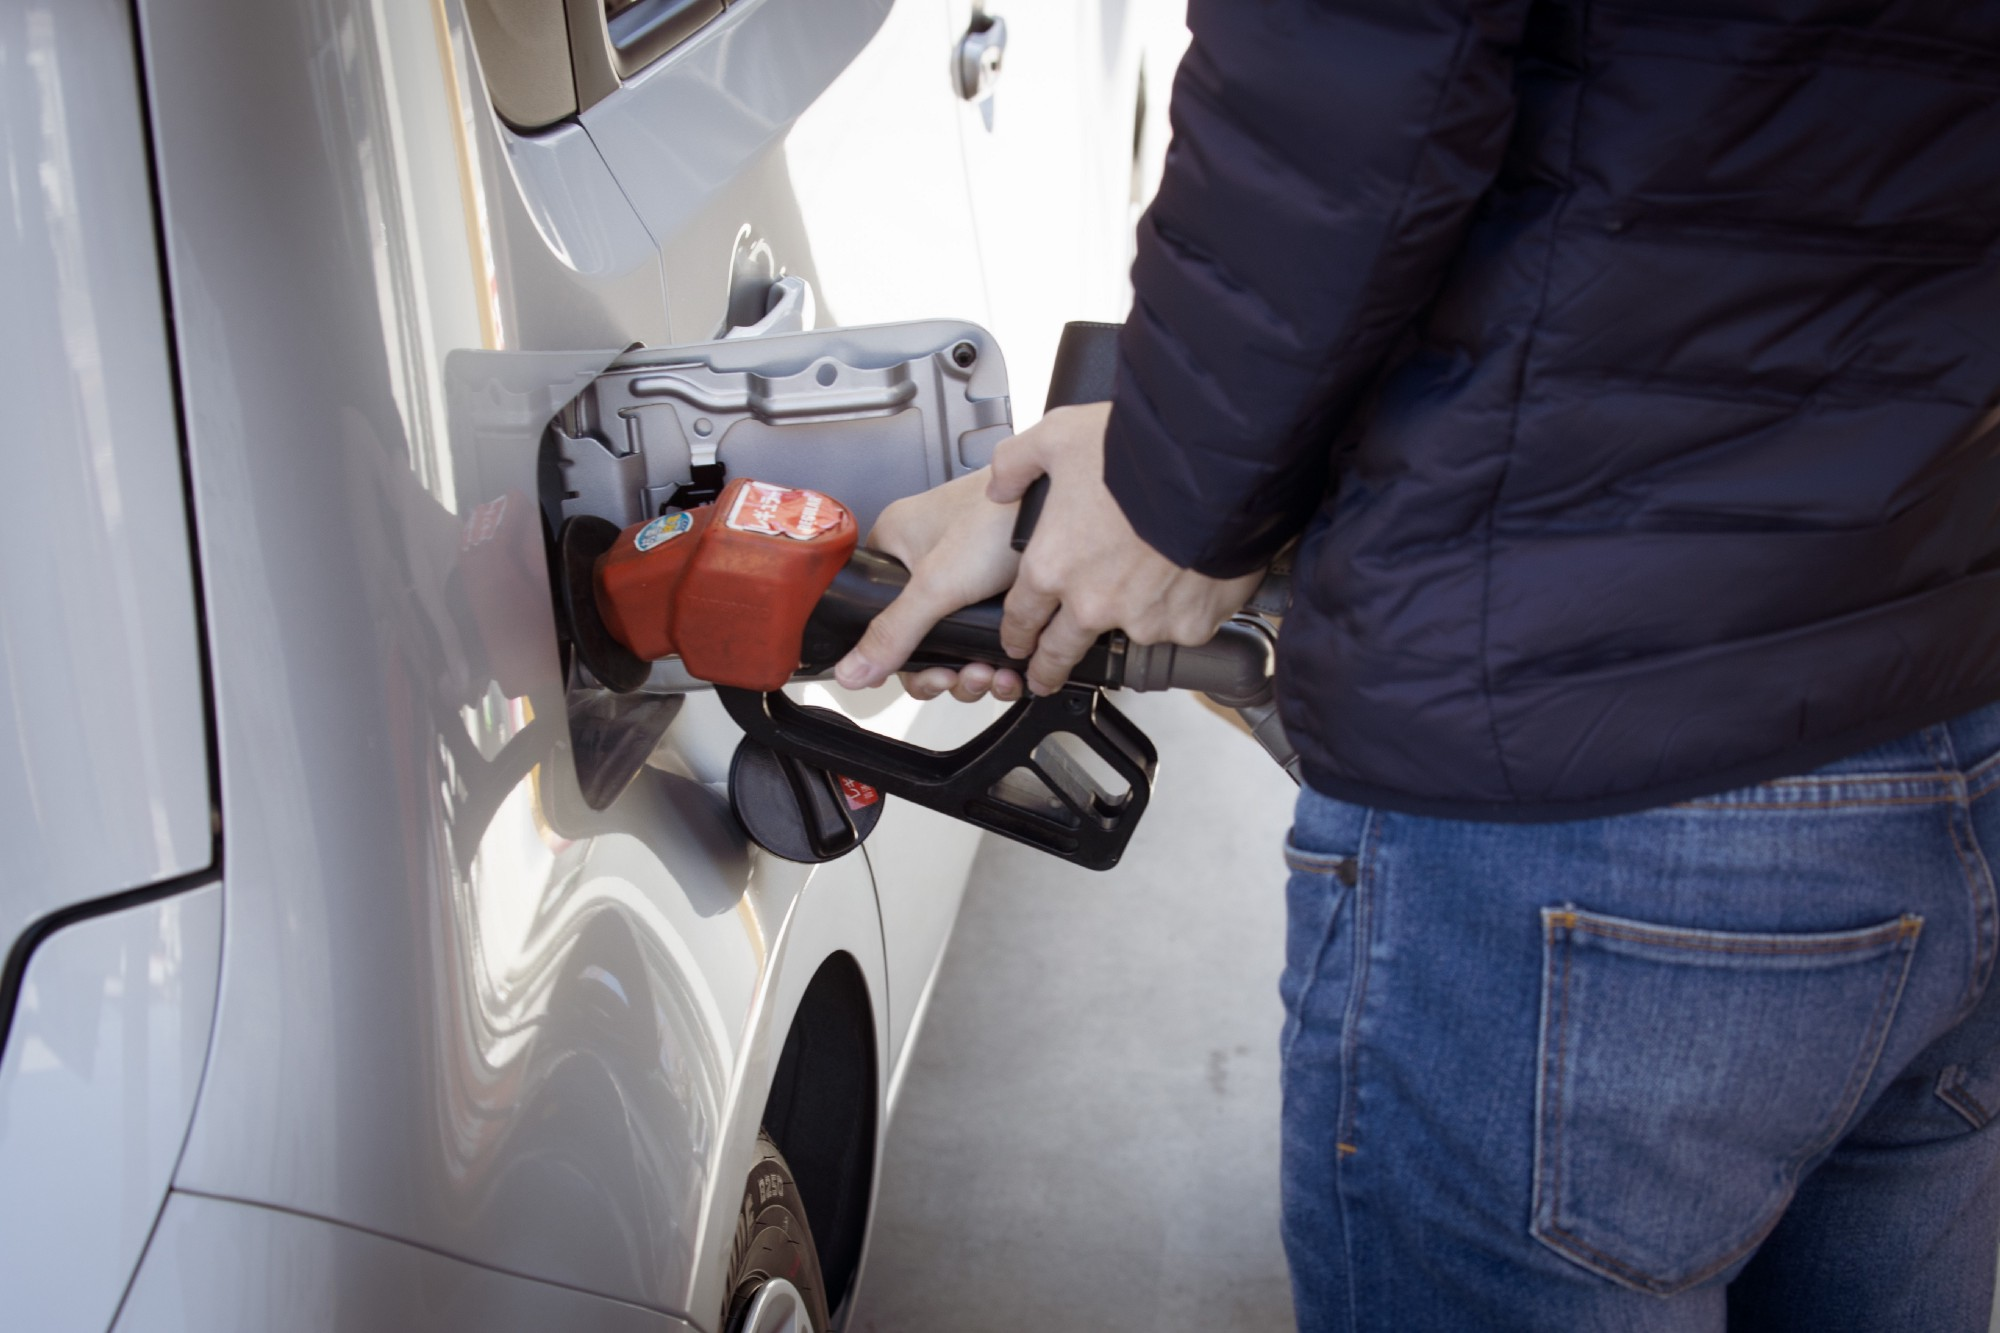 A man in a blue jack and blue jeans pumps gasoline into his white hatchback car.